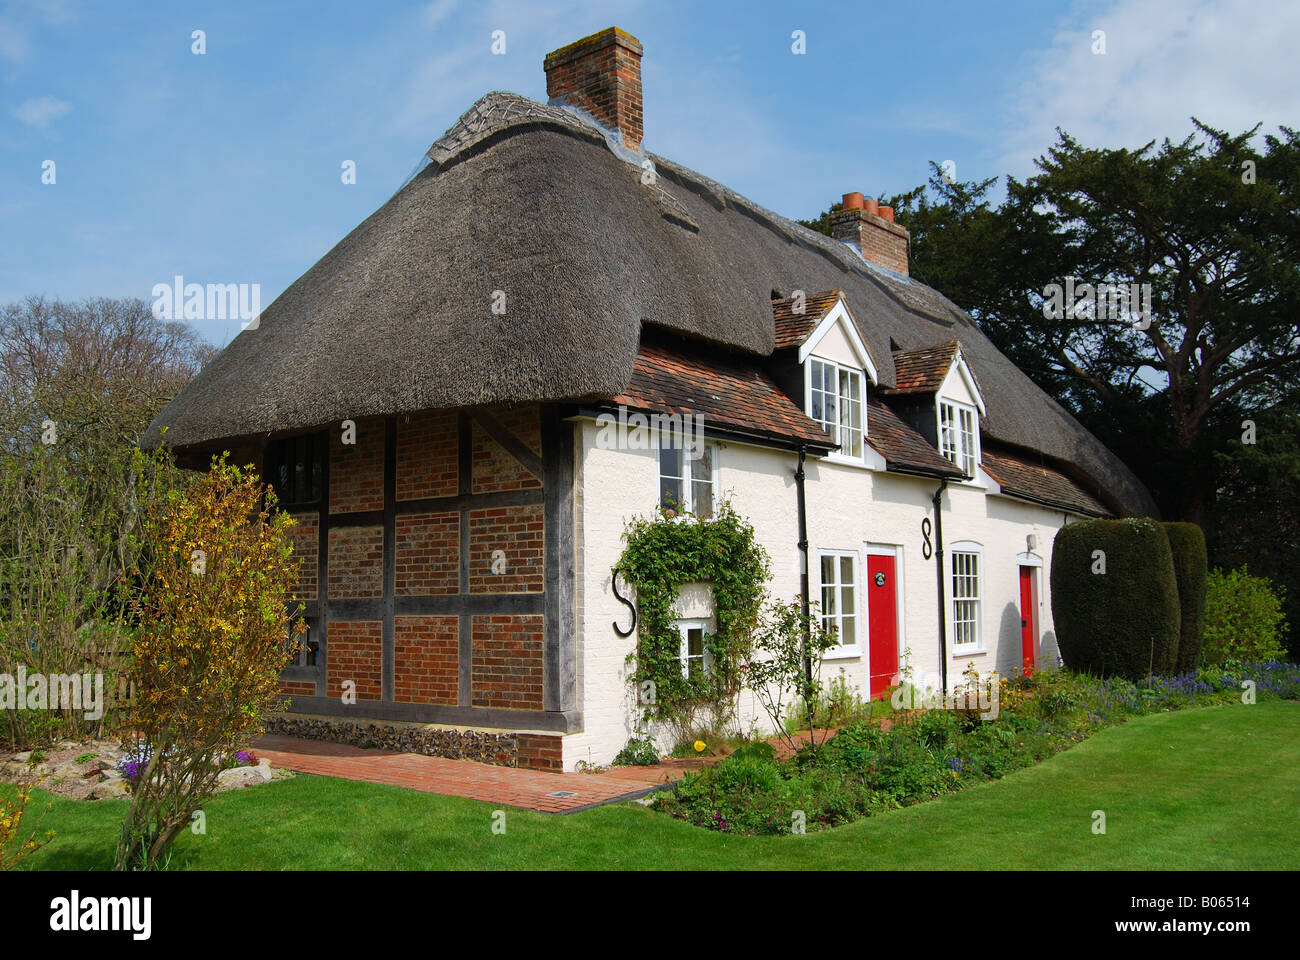 Thatched country cottage, Denmead, Hampshire, England, United Kingdom - Stock Image